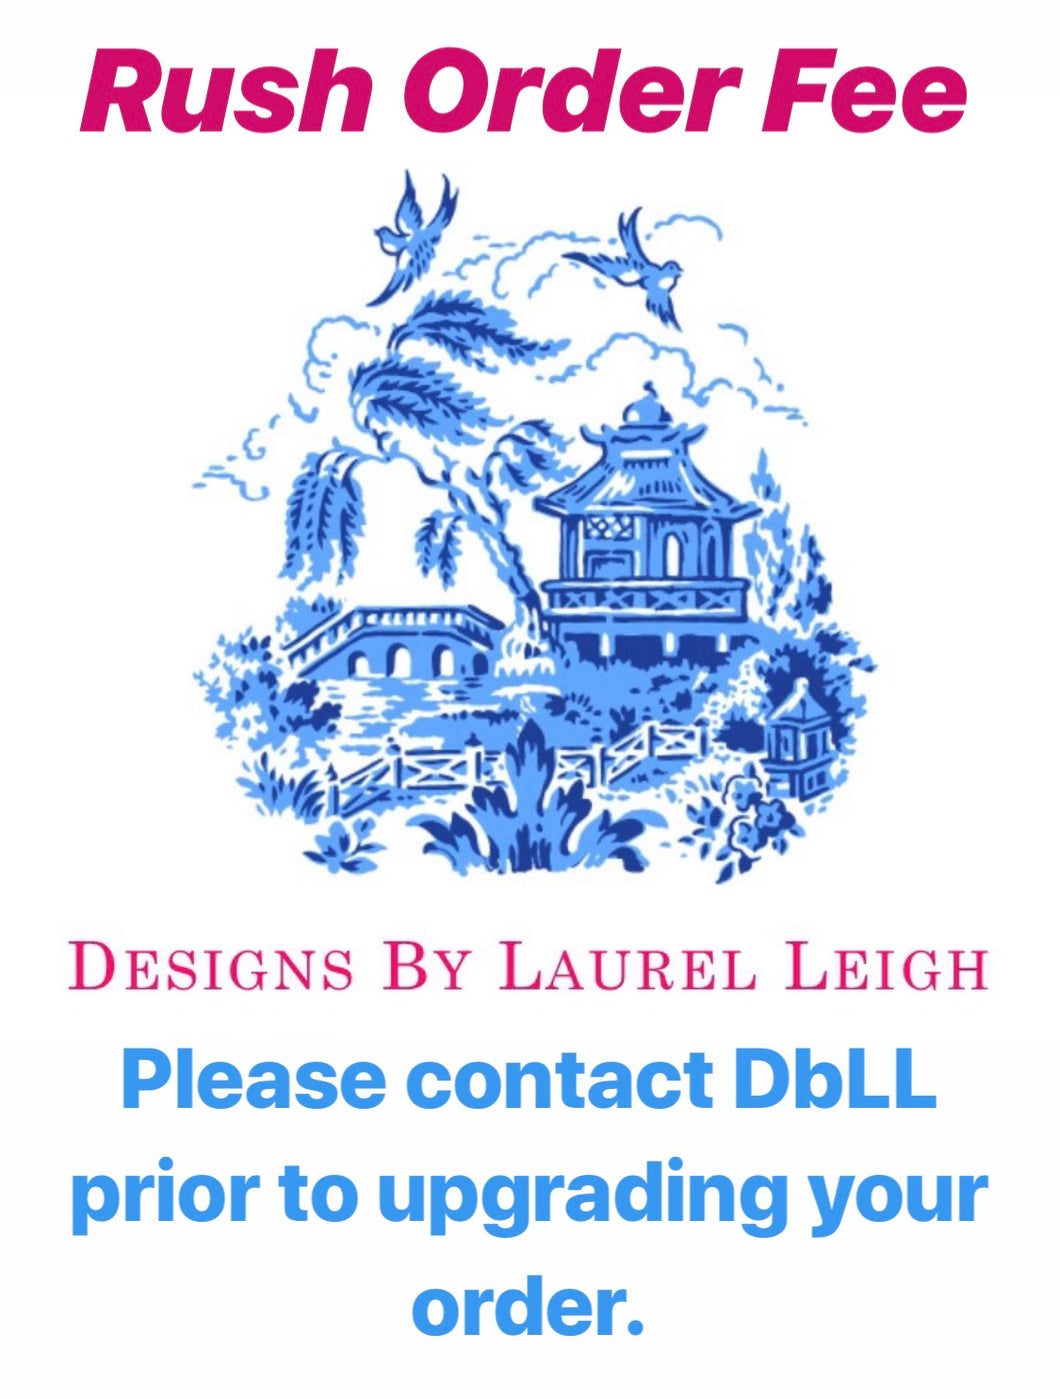 Rush Order Fee - Designs by Laurel Leigh